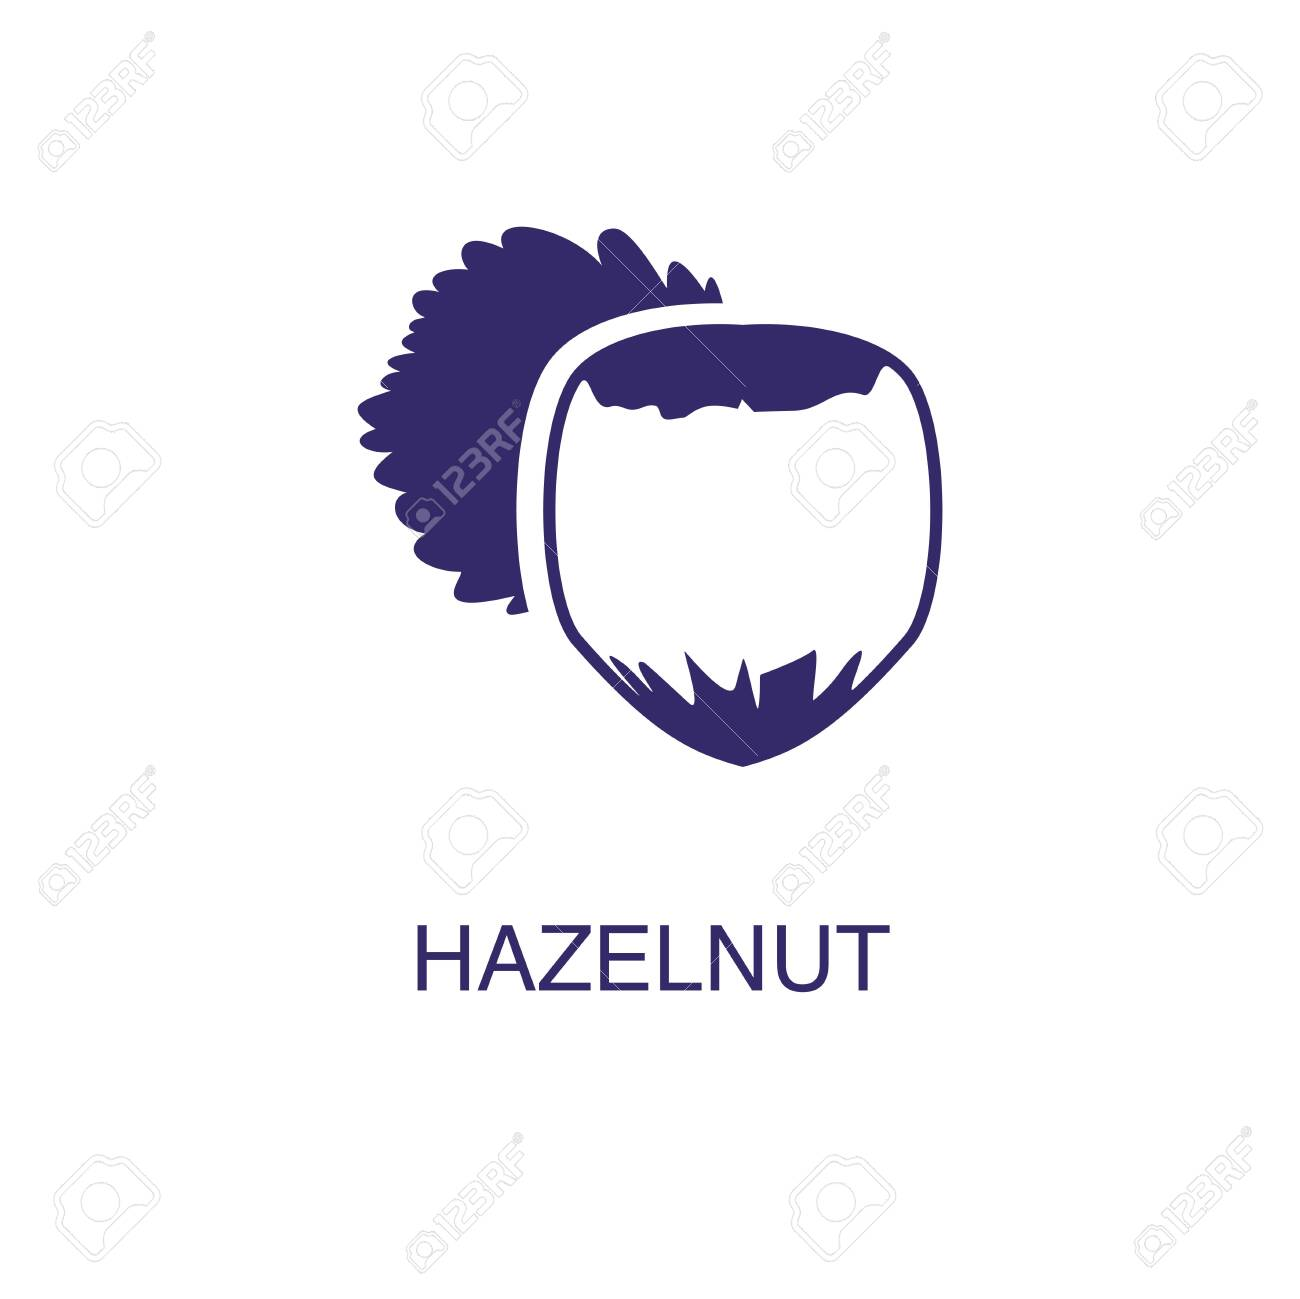 Hazelnut element in flat simple style on white background. Hazelnut icon, with text name concept template - 134450496